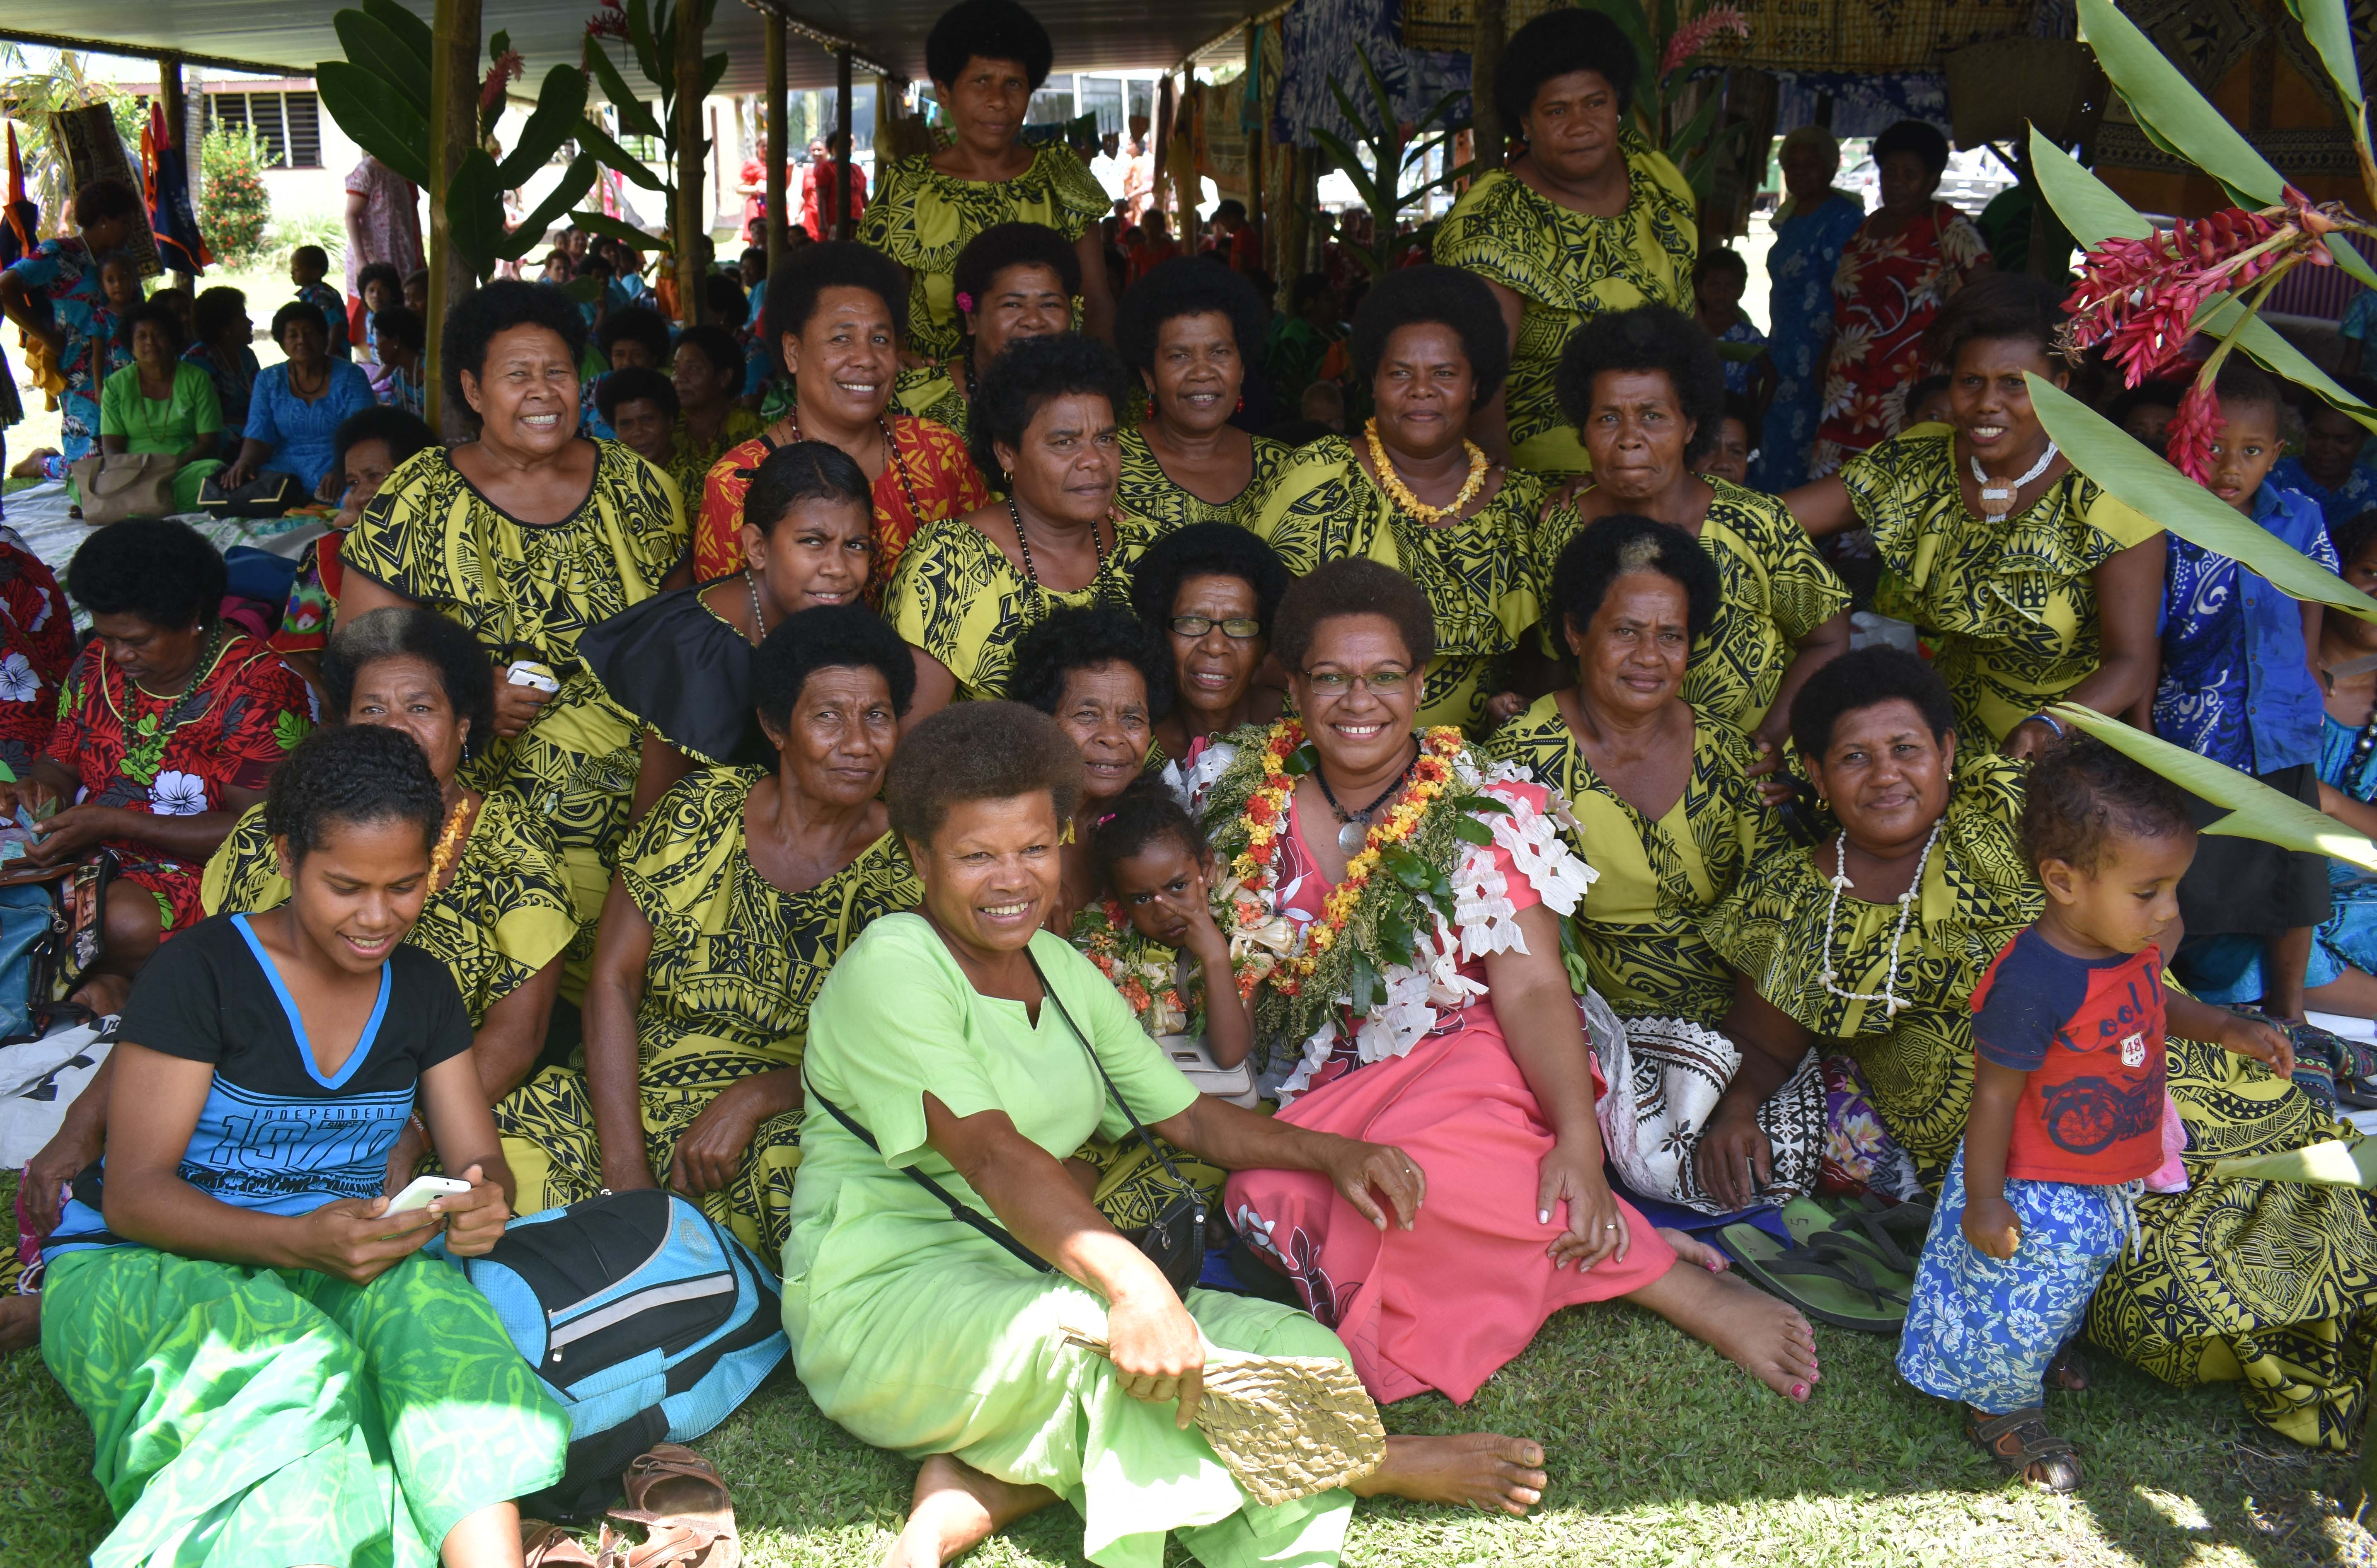 Minister for Women, Children and Poverty Alleviation Mereseini Vuniwaqa with women during Natewa Day at Tukavesi Village in Cakaudrove Province on October 19.2017 Photo: AFA KAUMAITOTOYA